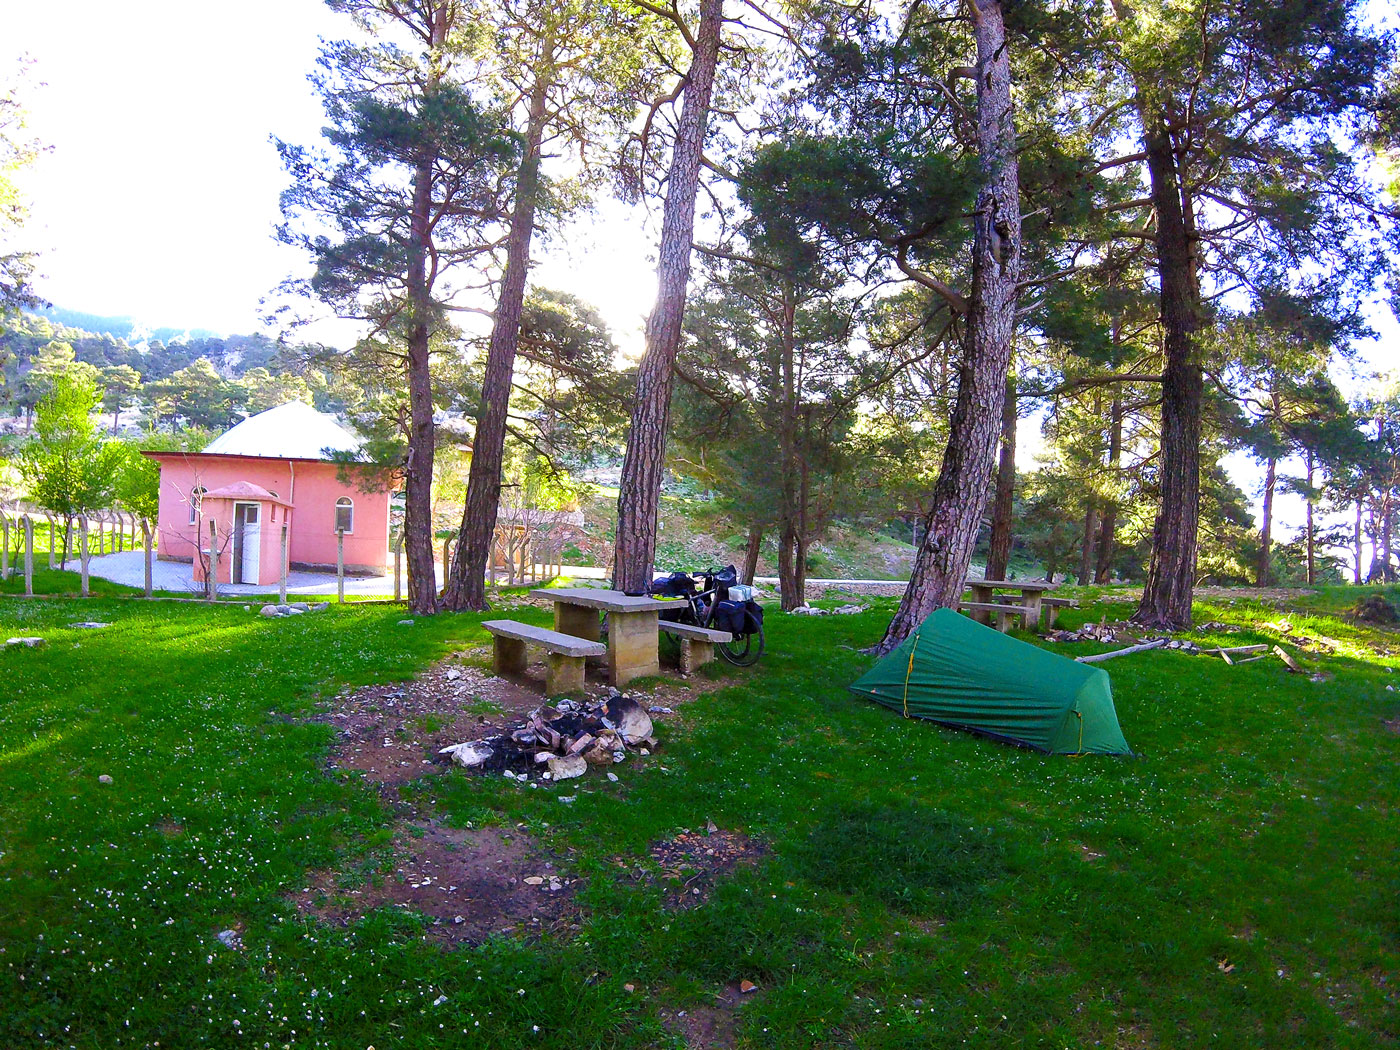 Turkey by bike, camping in the mountains behind a mosque. Cycling Turquey, bivouac in the mountains behind a mosque.